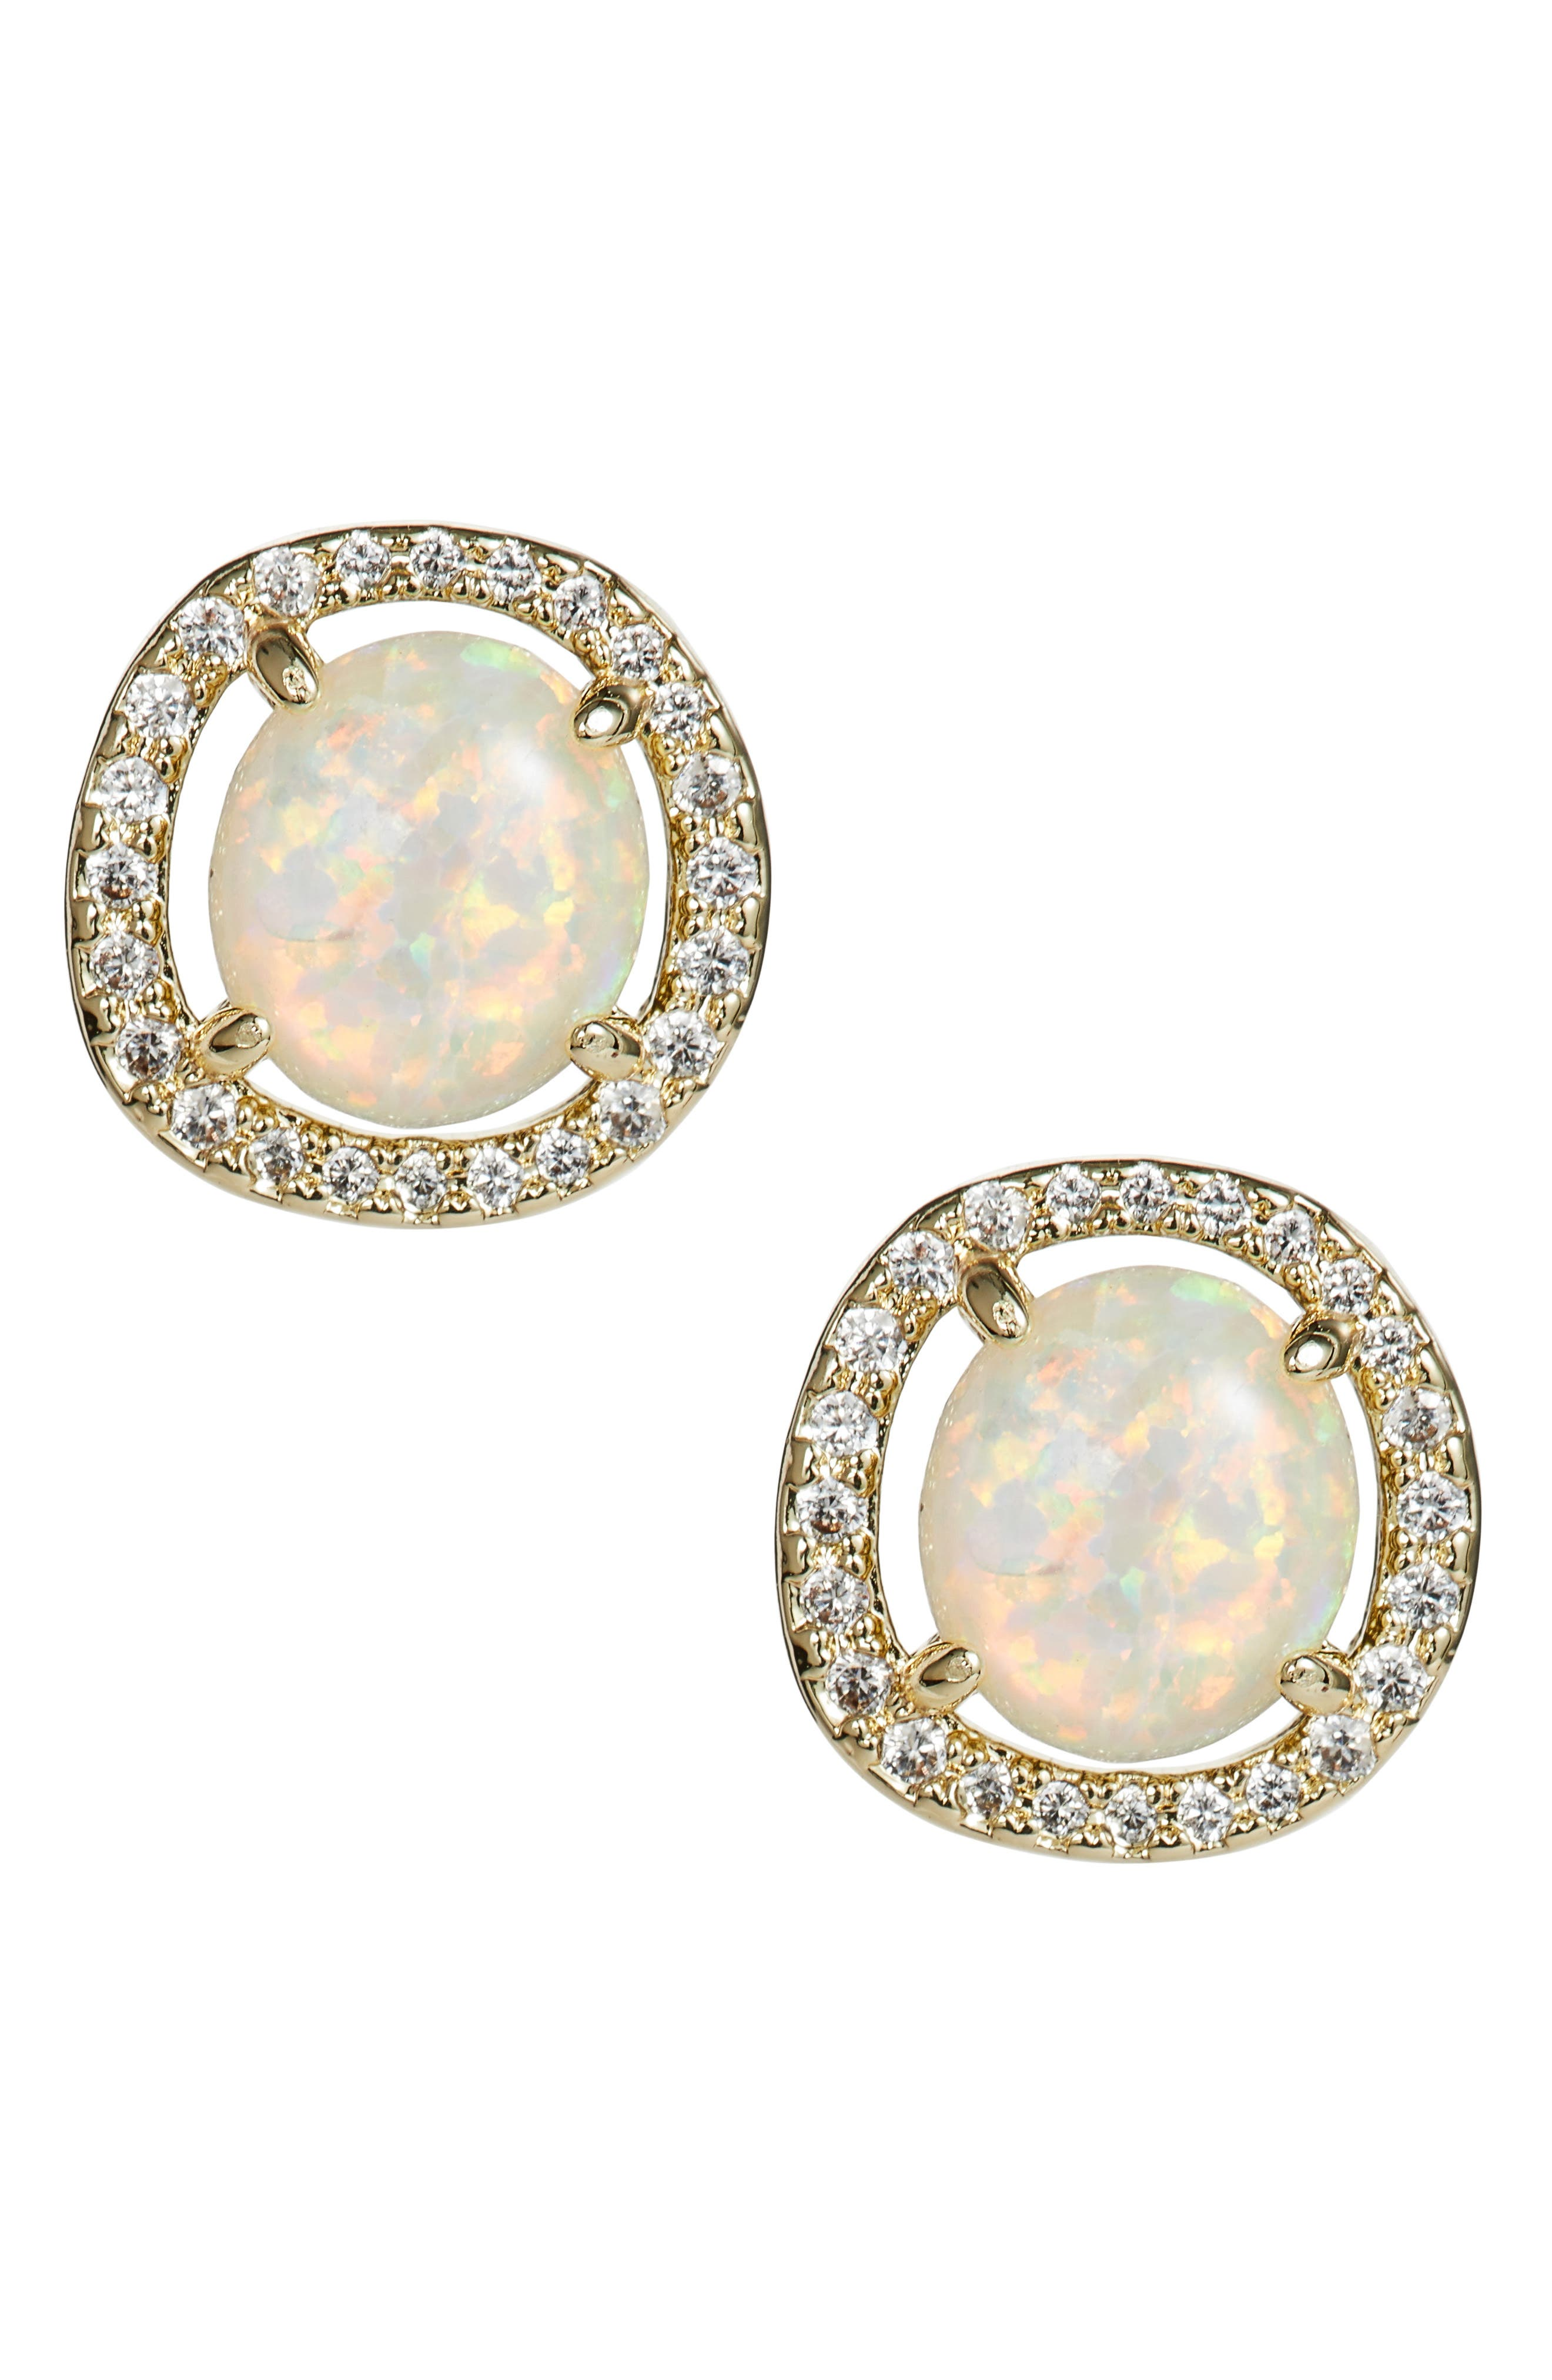 Sarah Louise Opal Stud Earrings,                         Main,                         color, White Opal/ Gold